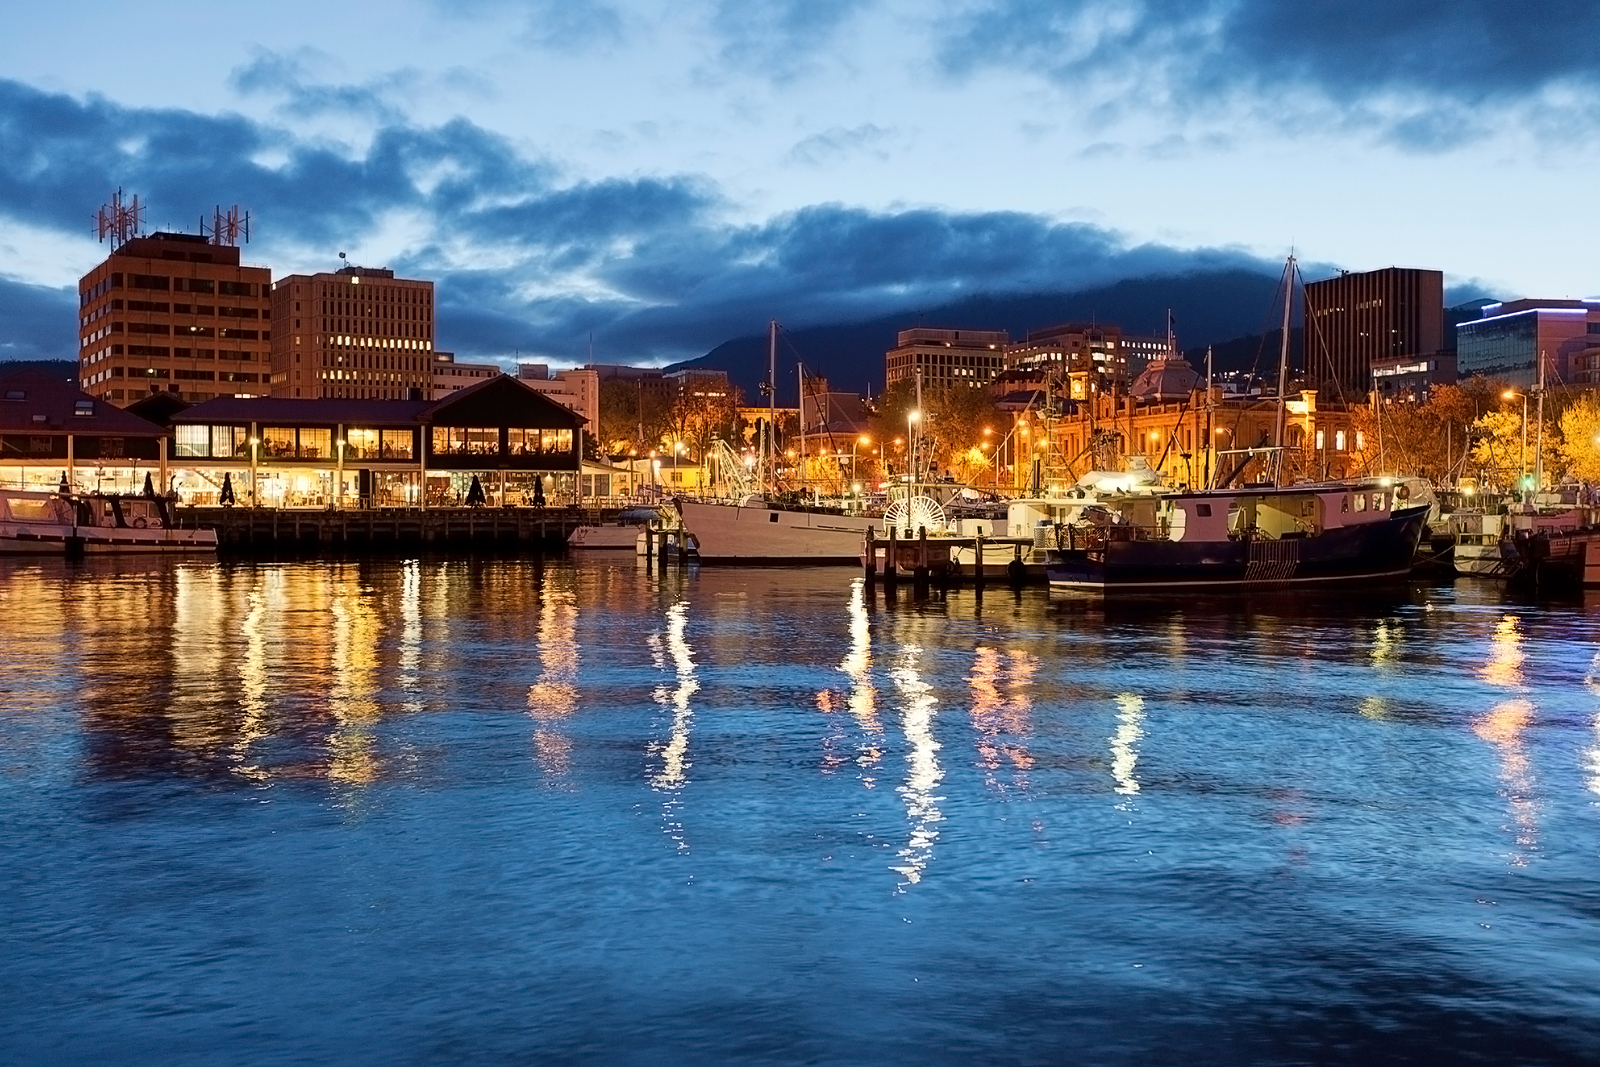 Hobart Waterfront Photographed At Night With City Skyline And Fishing Boats